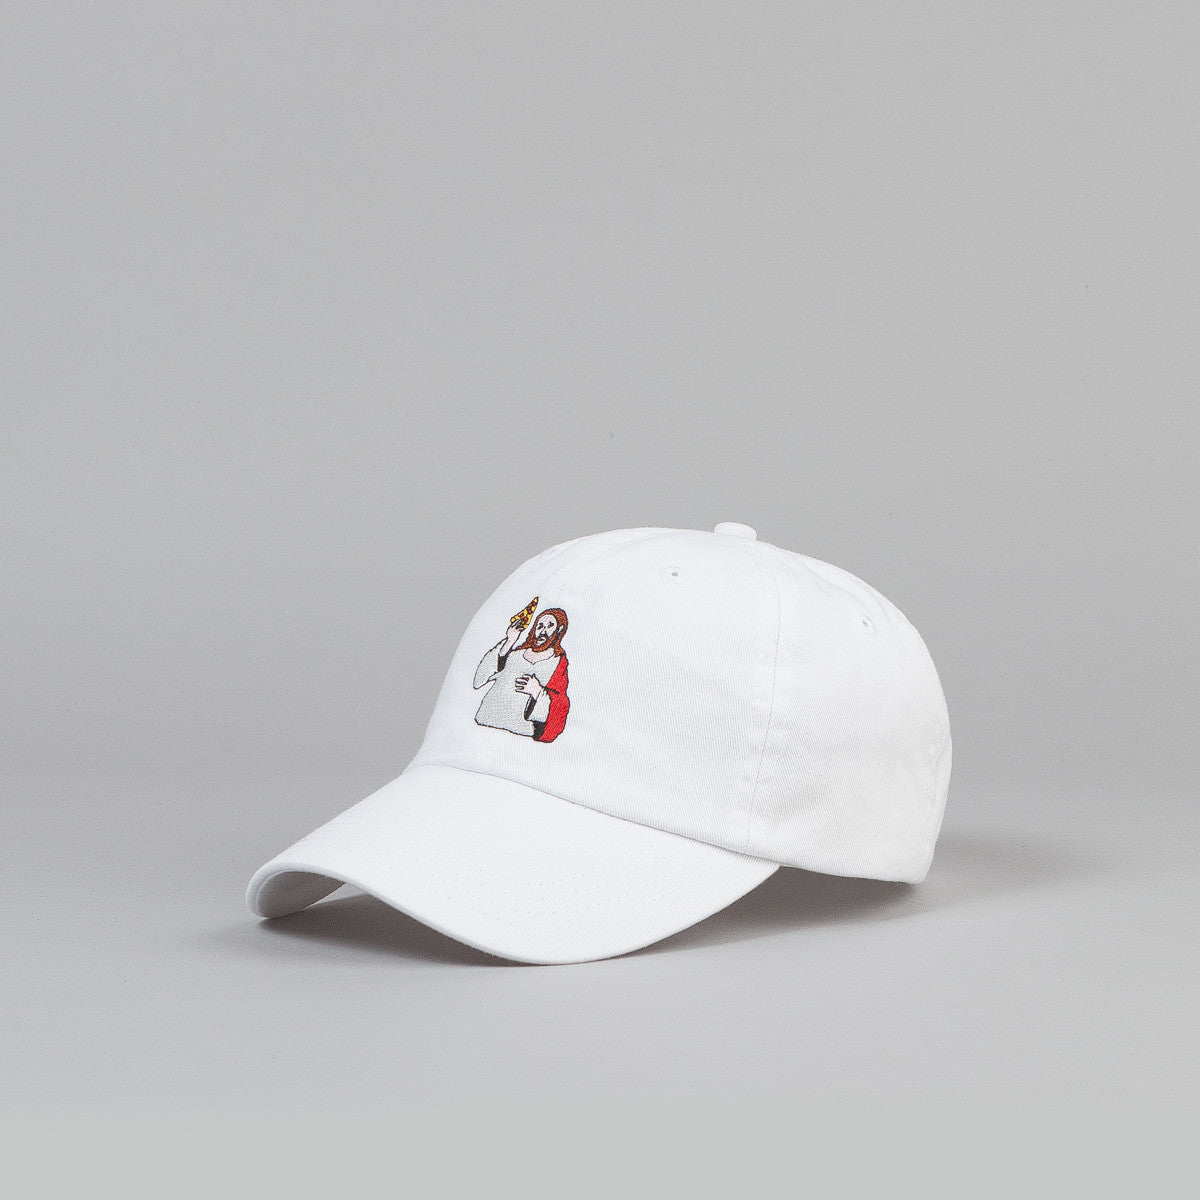 Pizza Skateboards Last Supper Delivery Boy Cap